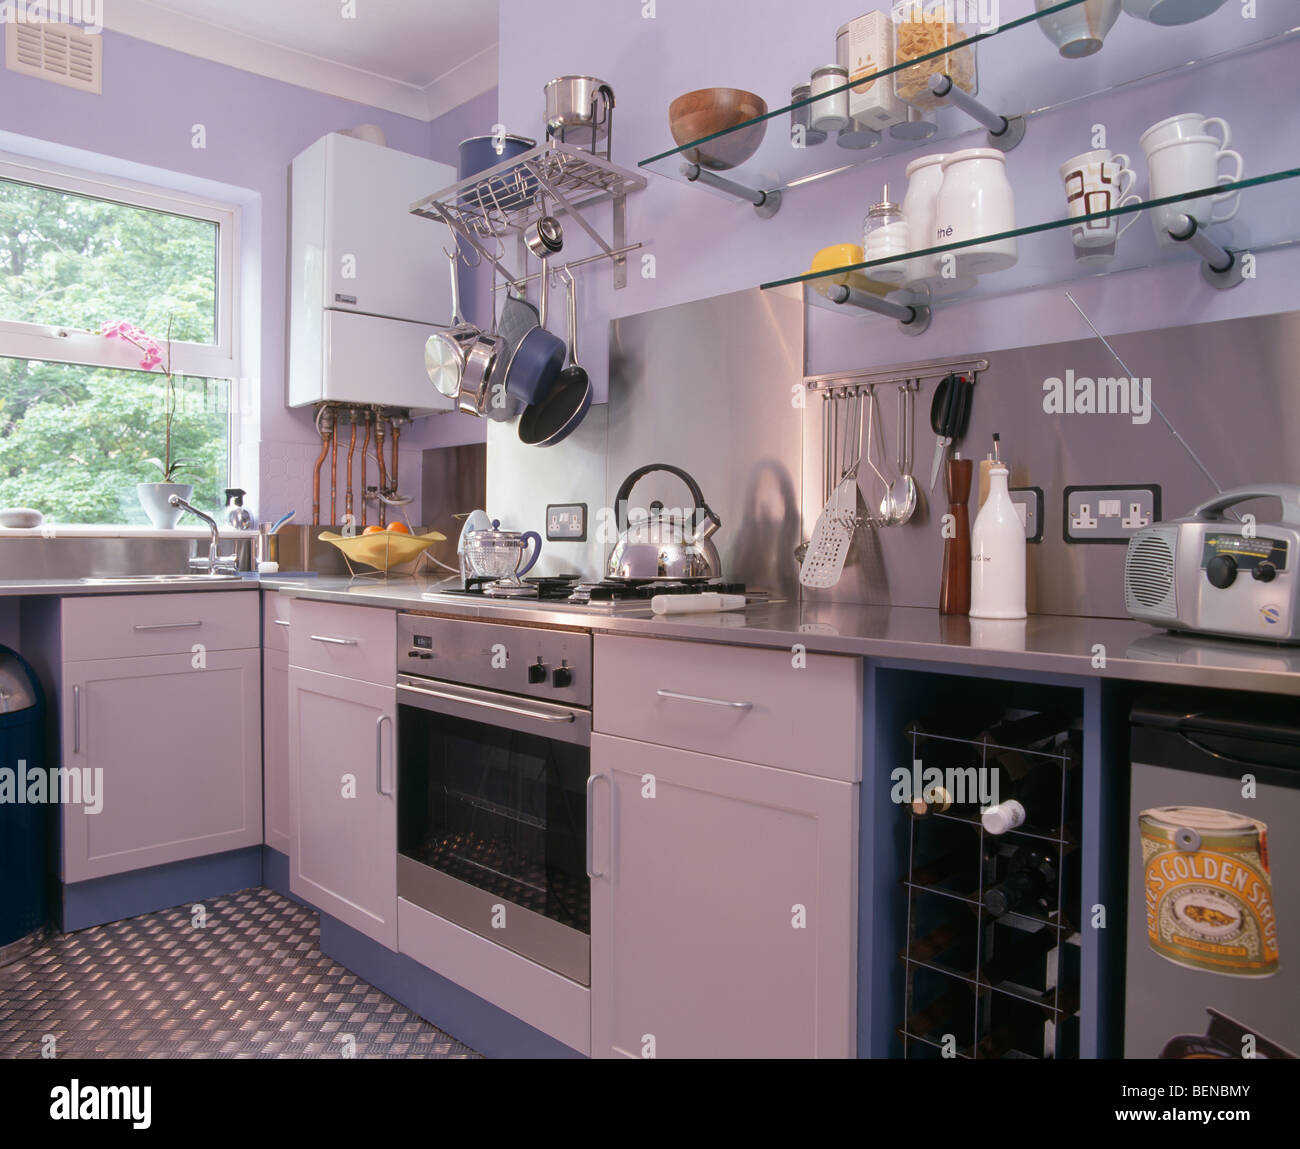 Glass shelving and stainless steel oven in modern mauve for Mauve kitchen walls